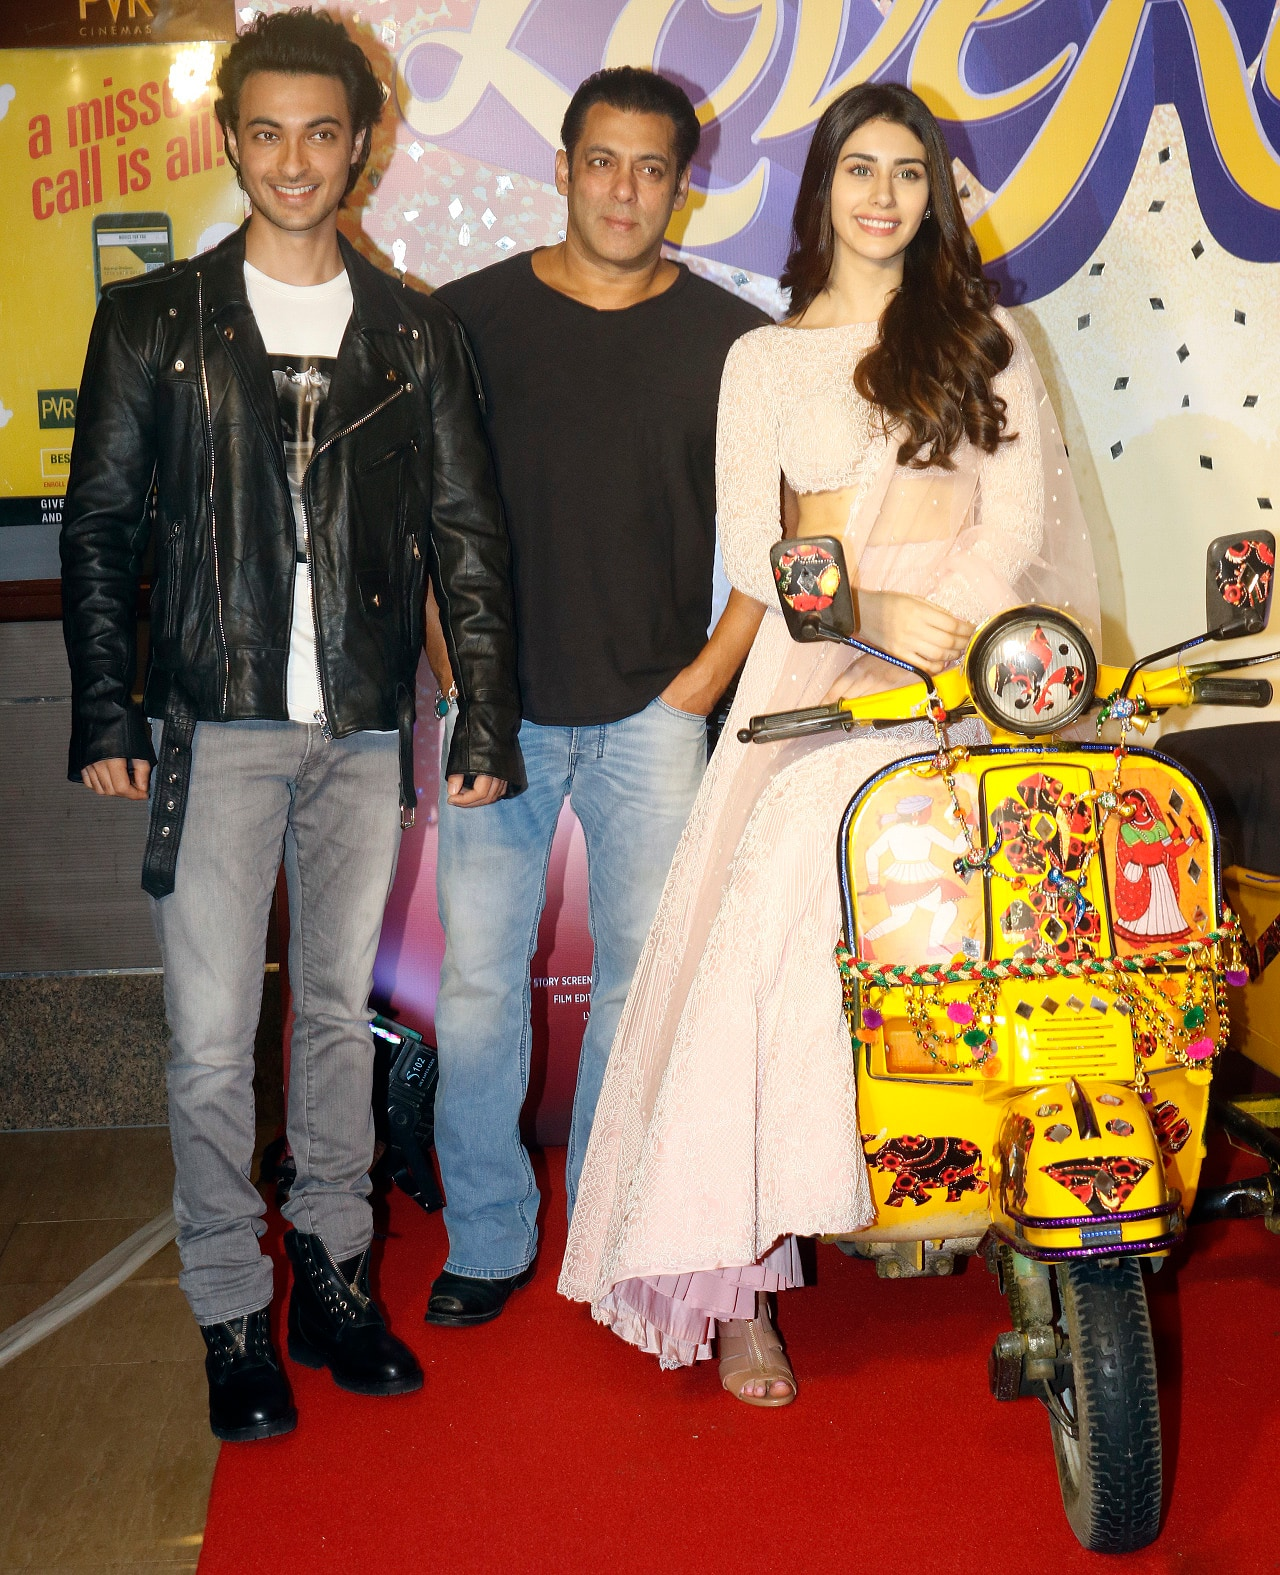 loveratri movie second song released today, salman tweet about song, let see what he say